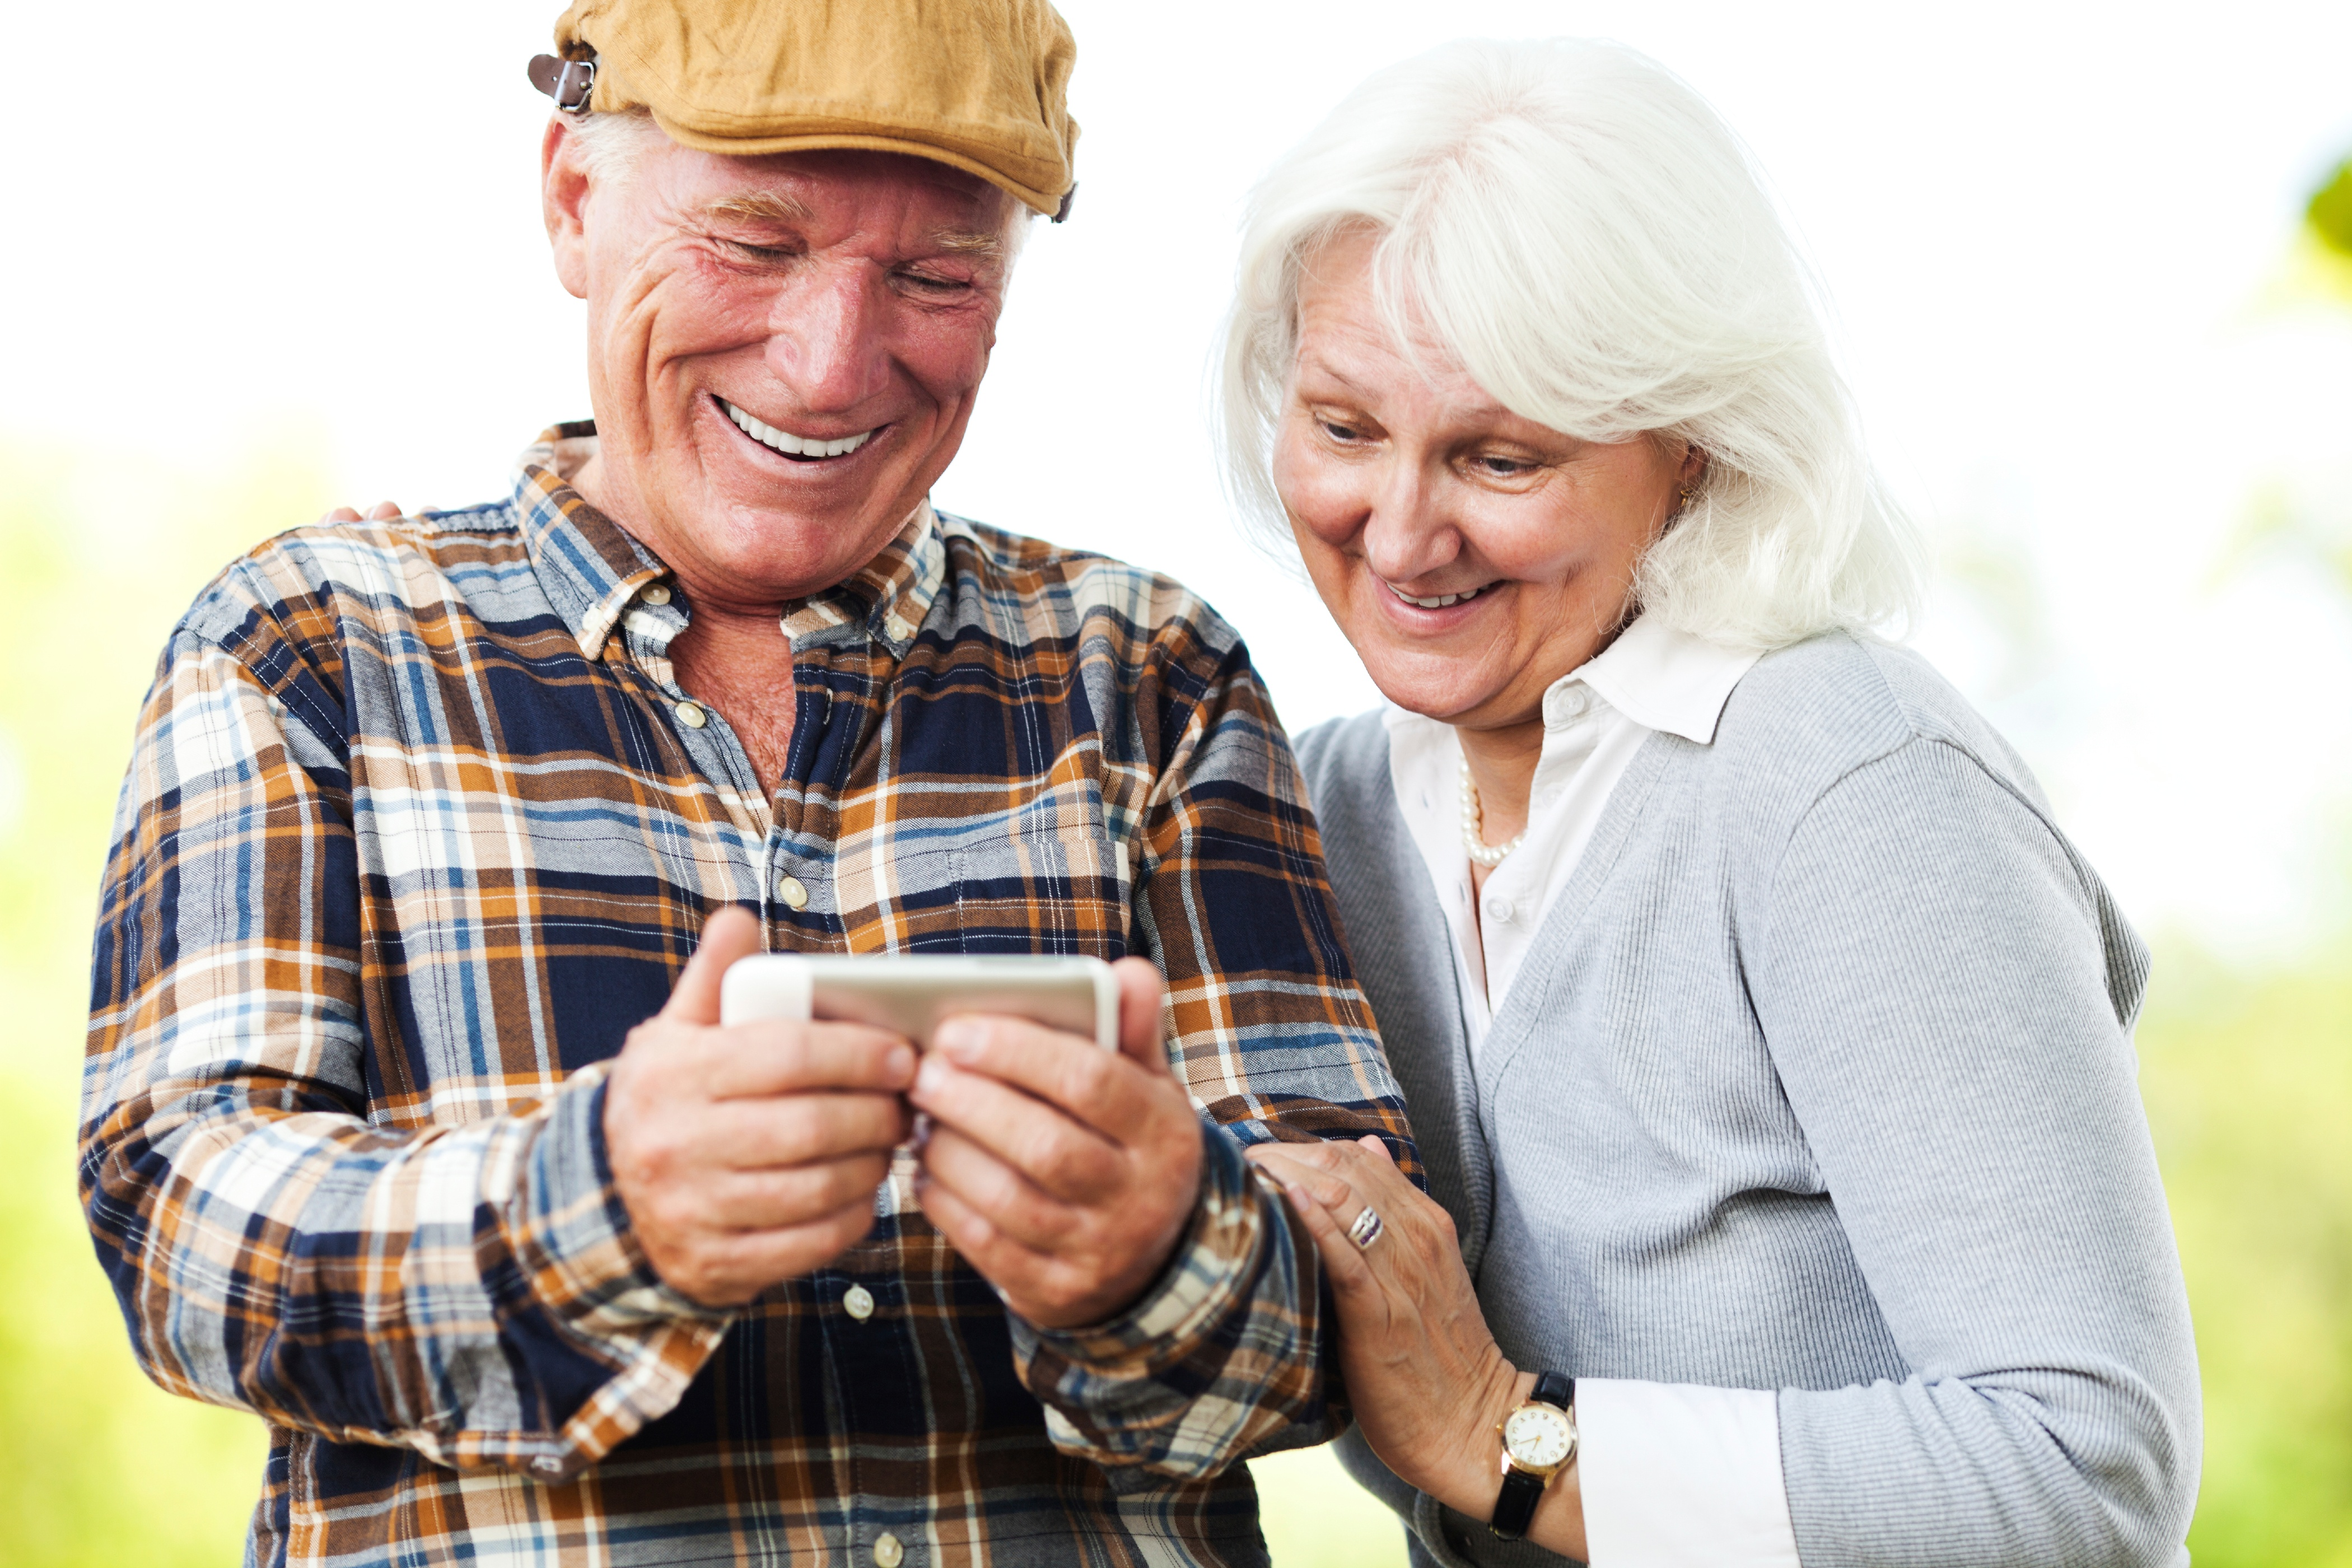 elder couple looking at phone.jpg